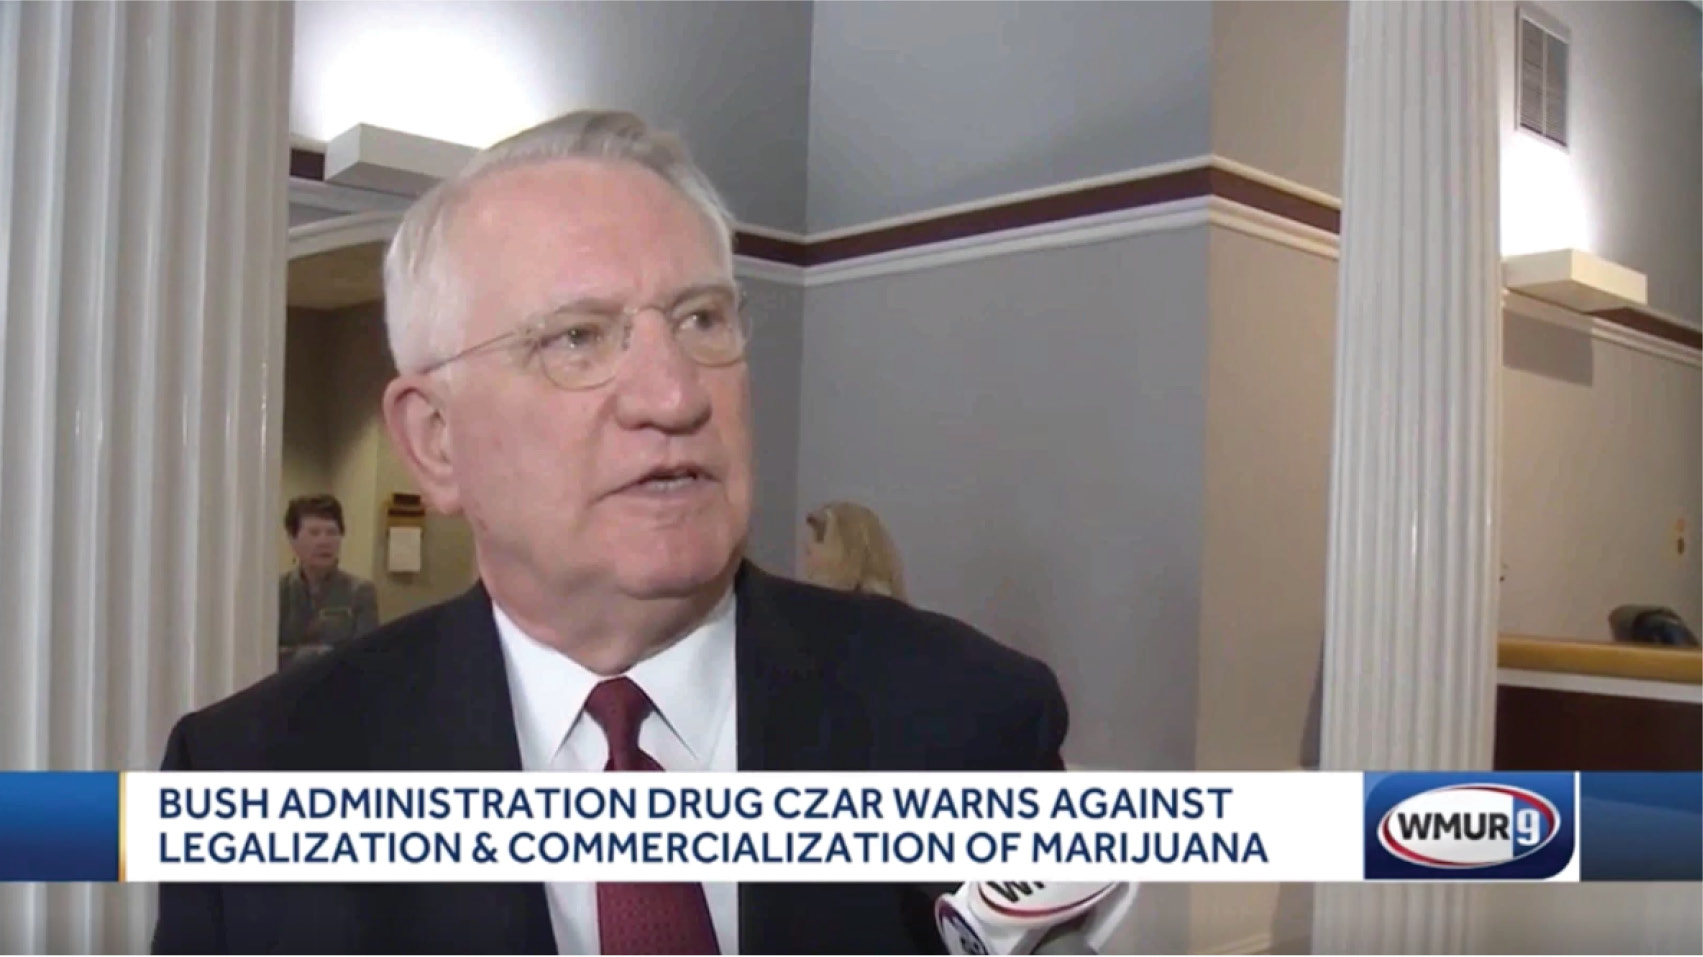 John Walters discusses the threat of marijuana legalization and his testimony against the legalization bill in New Hampshire.